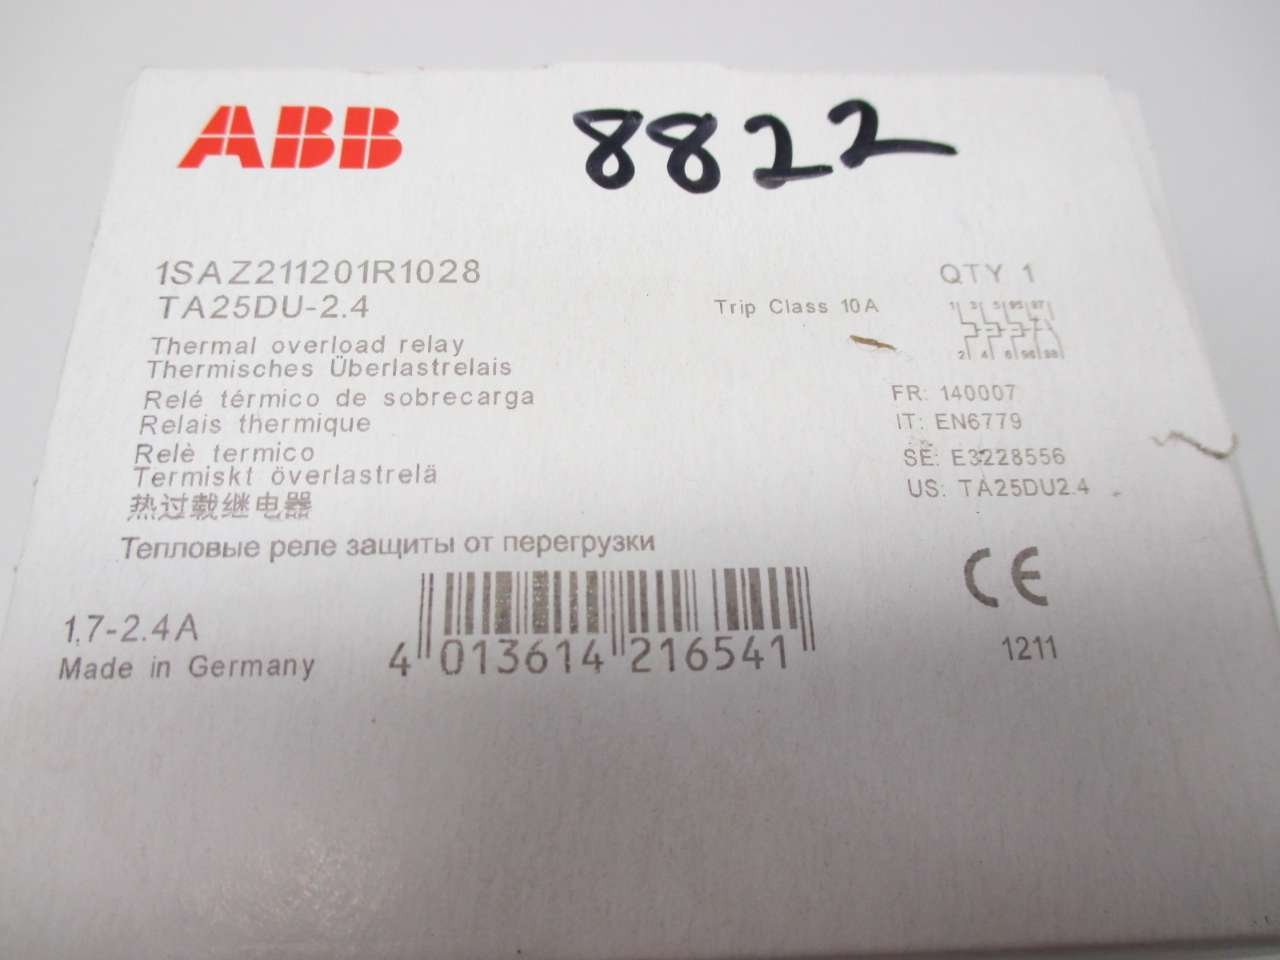 New Abb Ta25du 24 17 24a Amp Thermal Overload Relay D511209 Solid State Amazoncom Industrial Scientific